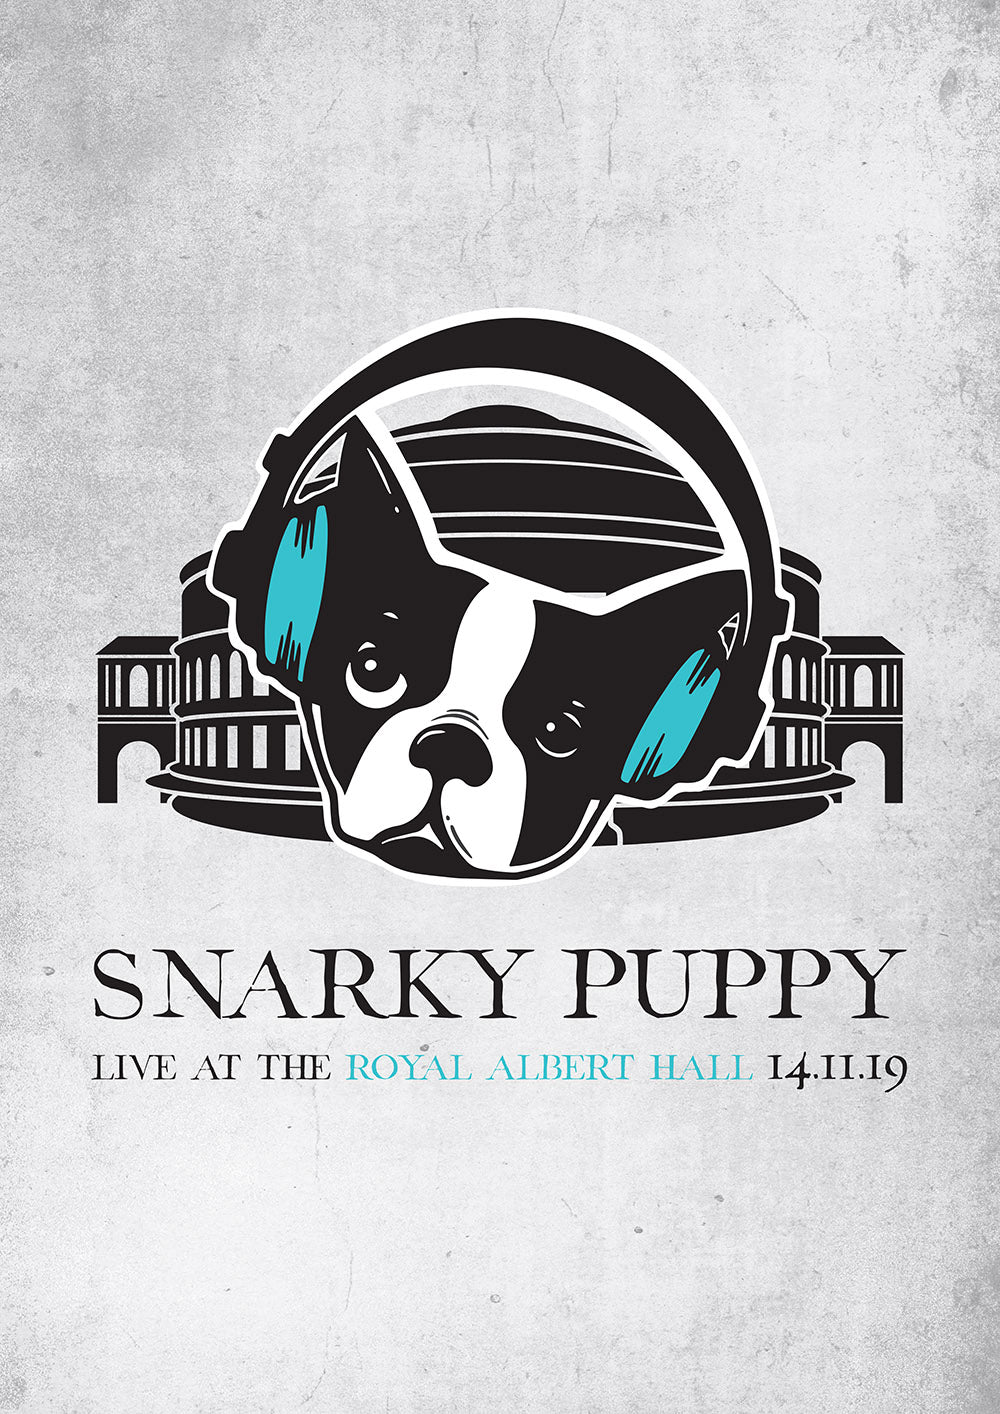 Snarky Puppy: Live At The Royal Albert Hall - Signed A3 Art Print with free download